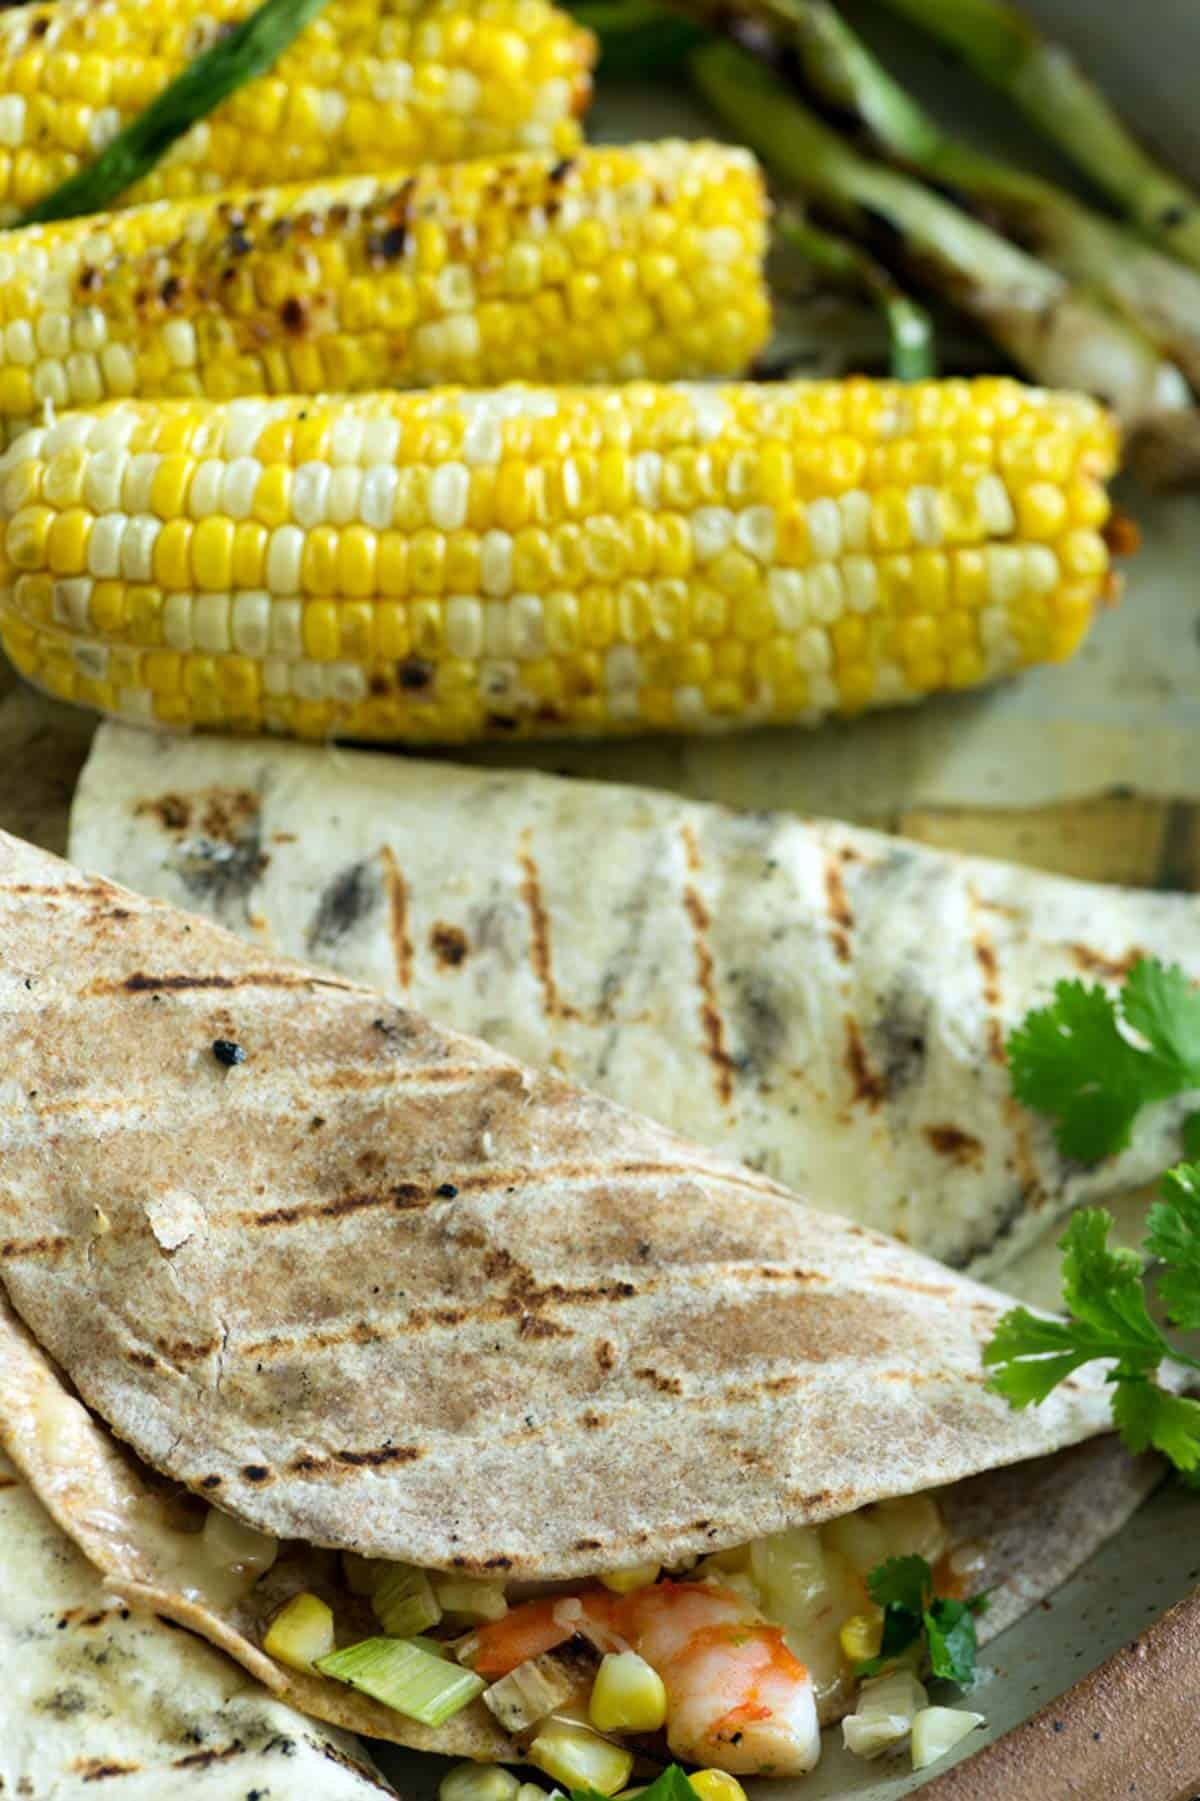 A platter with two shrimp quesadillas with grilled corn in the background.